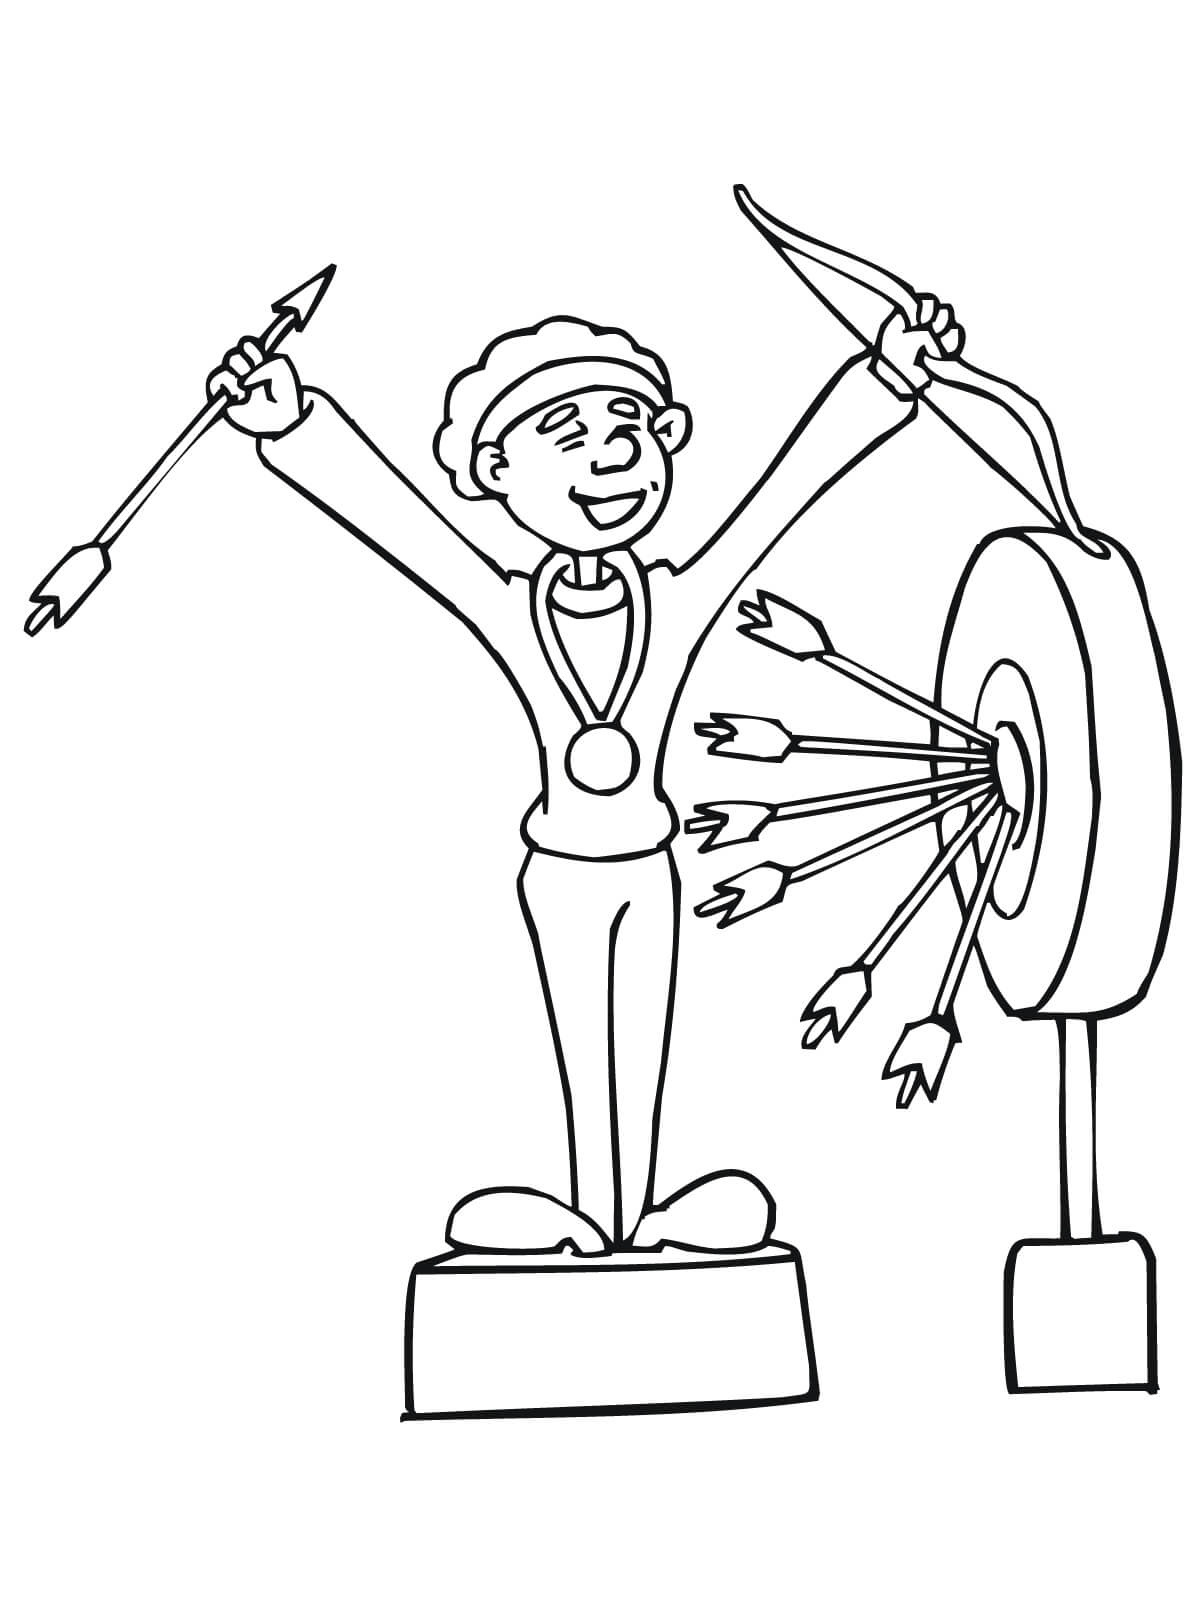 Winning Archer Coloring Page